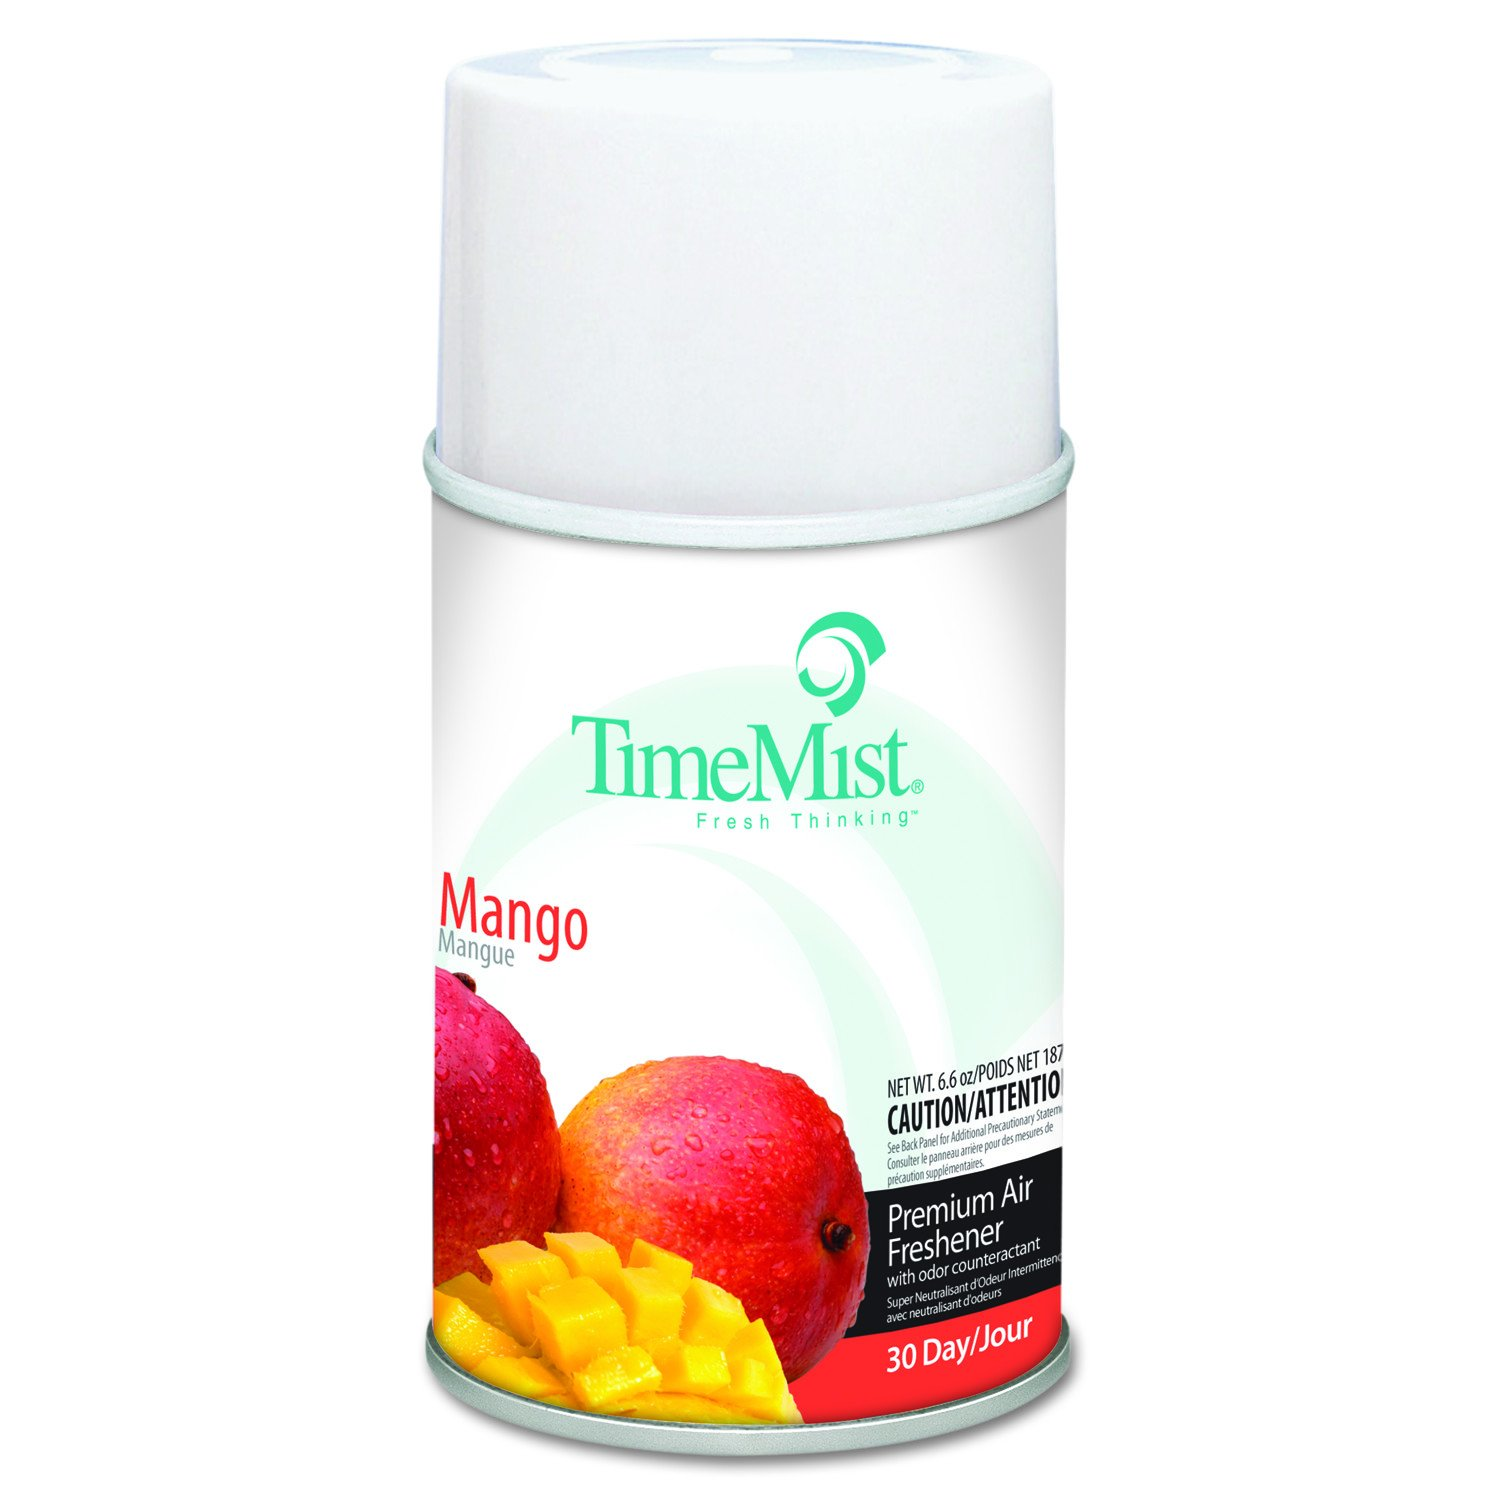 TimeMist 1042810 Metered Fragrance Dispenser Refills, Mango, 6.6oz, Aerosol (Case of 12) by Timemist